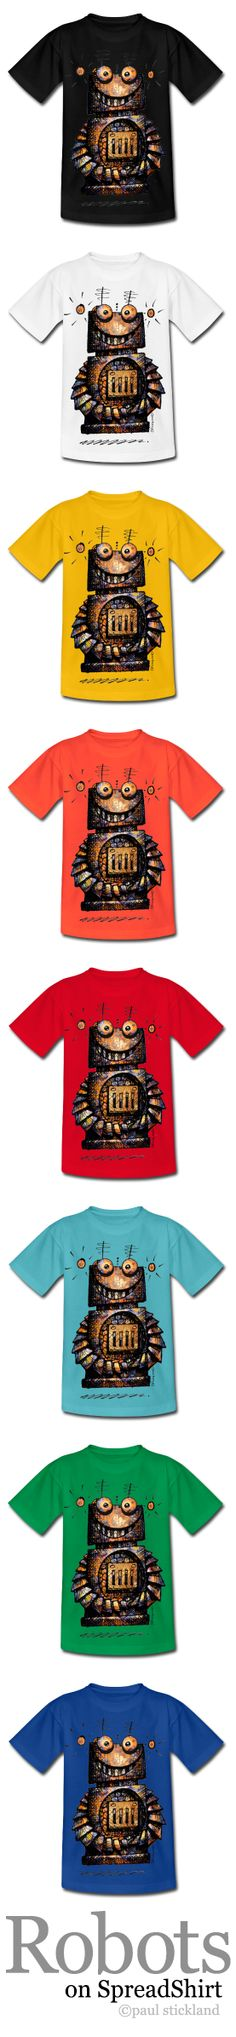 ★ StrangeStore on Spreadshirt! ★ Simple colourful kids and adult t shirts from StrangeStore by Paul Stickland Whoa! Loads of Little Robot T Shirts!  Can't resist all the colours!  #strangestore #robots #kids #fashion www.paulstickland.spreadshirt.co.uk